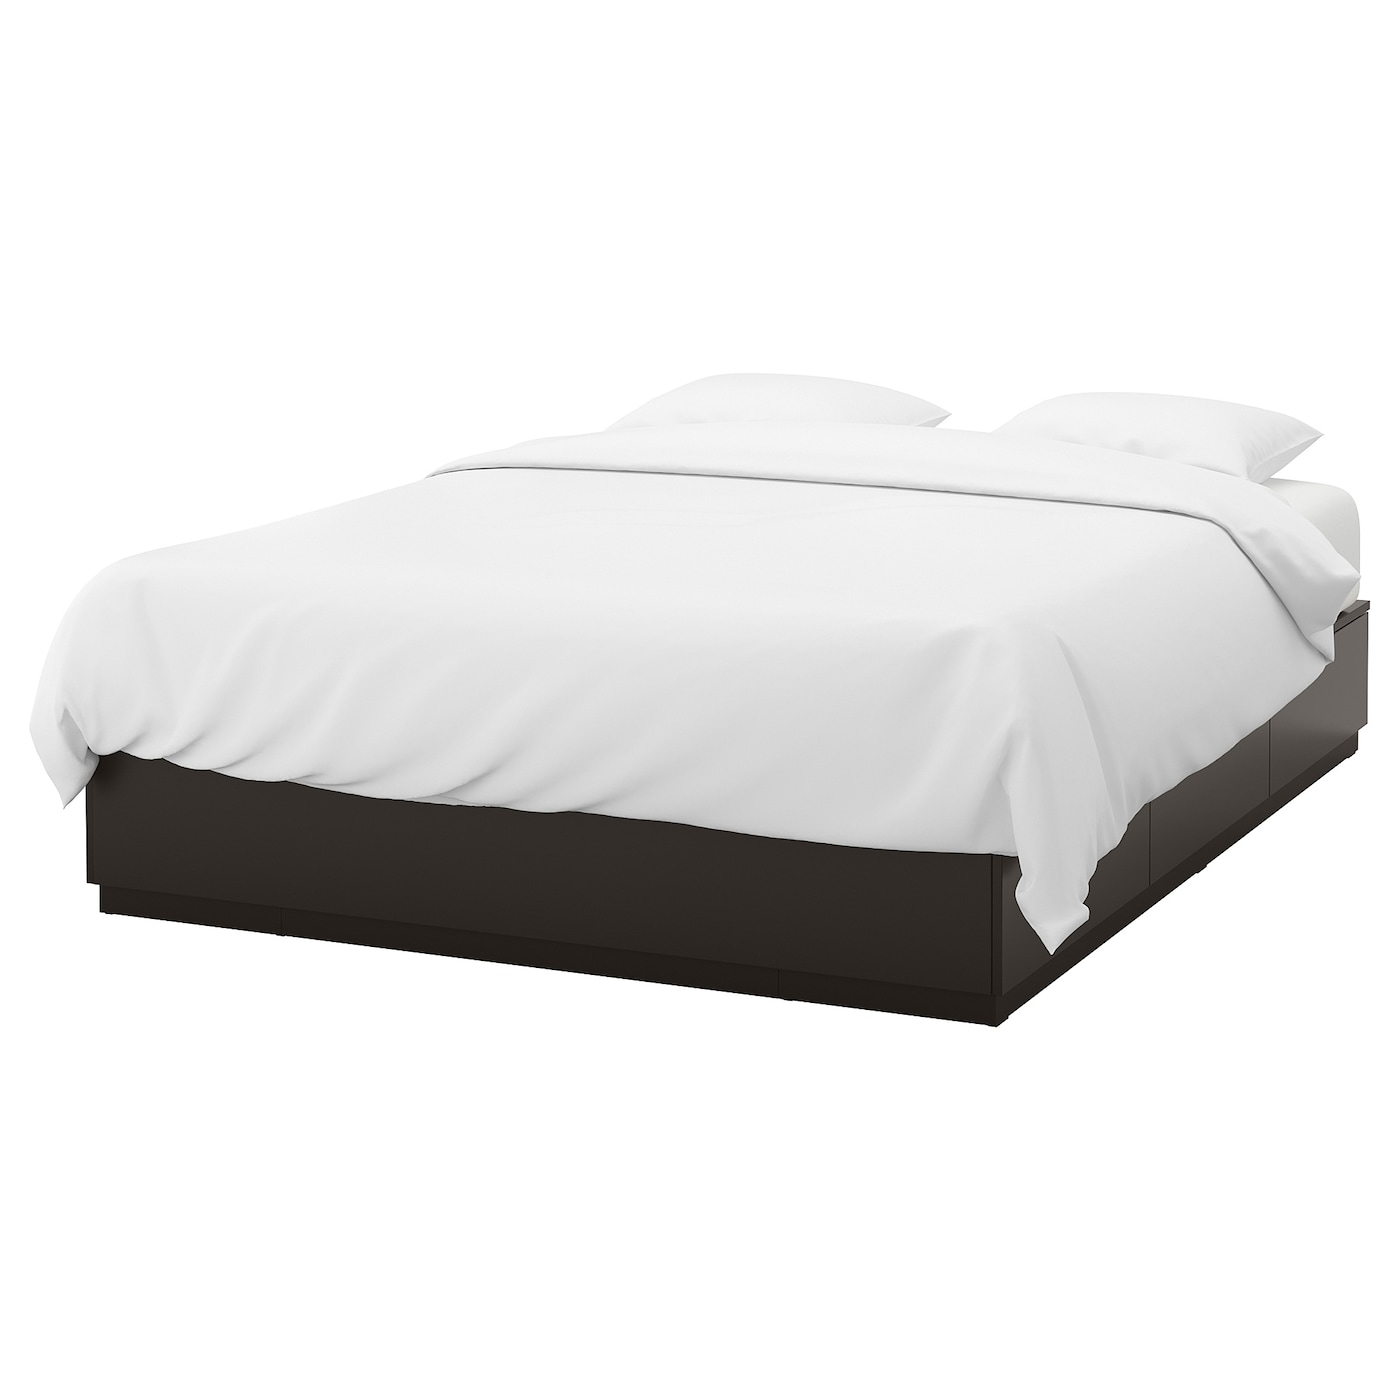 Double Beds King Amp Super King Beds Ikea Ireland Dublin